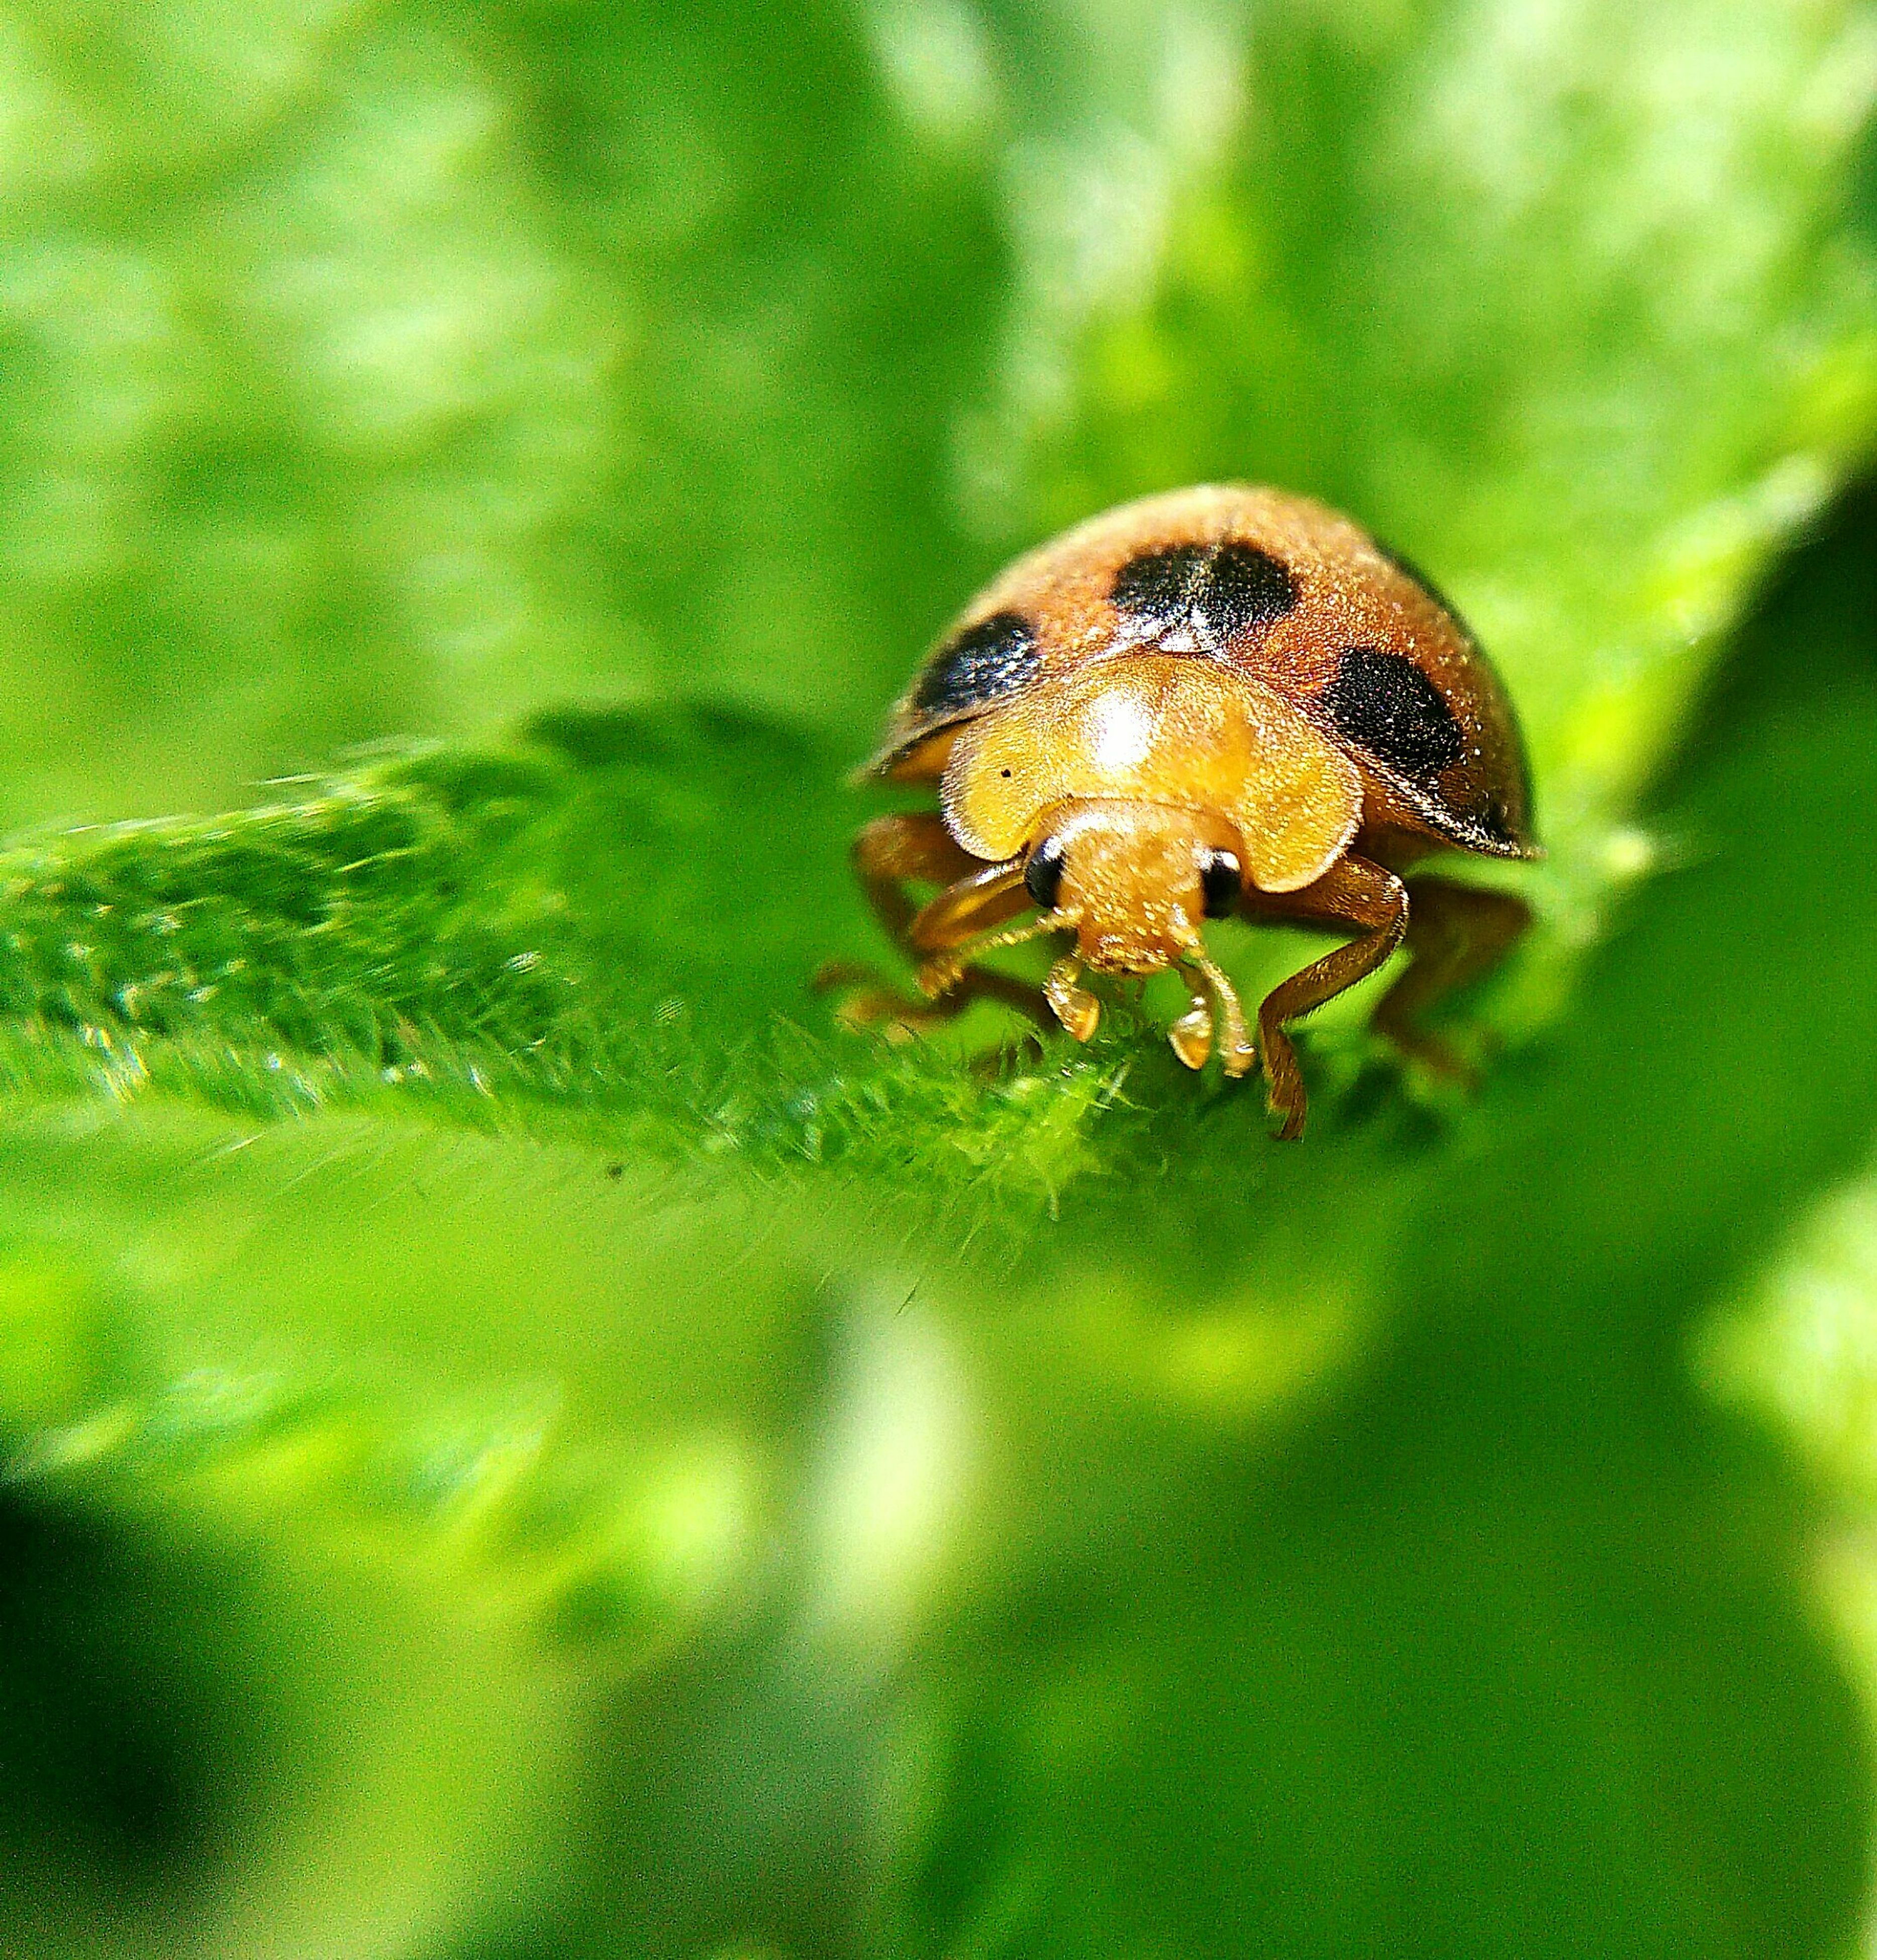 one animal, animal themes, close-up, animals in the wild, wildlife, green color, focus on foreground, selective focus, nature, insect, day, outdoors, no people, beauty in nature, leaf, growth, snail, spotted, plant, natural pattern